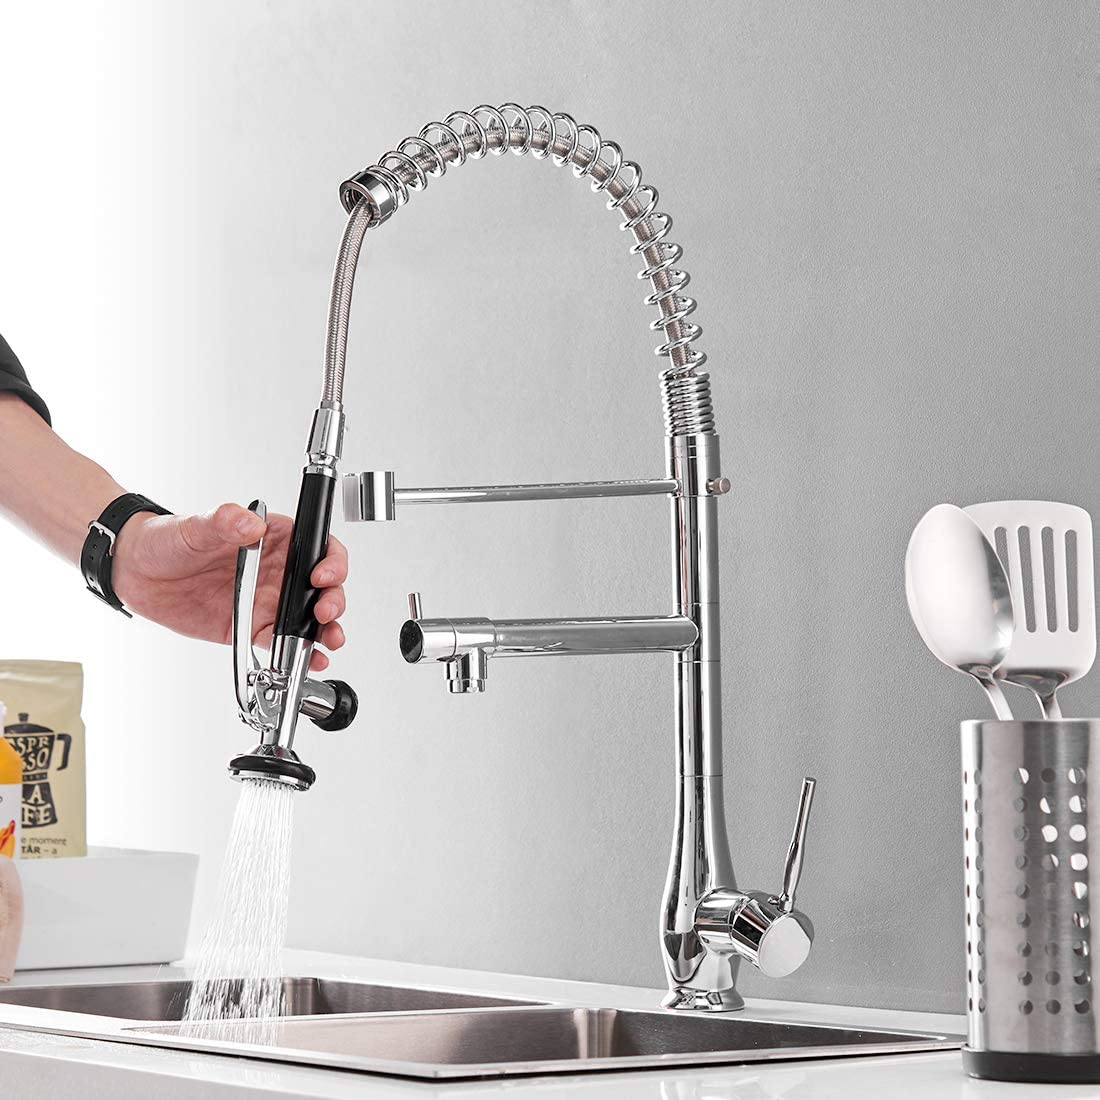 GIMILI Pull Down Kitchen Faucet